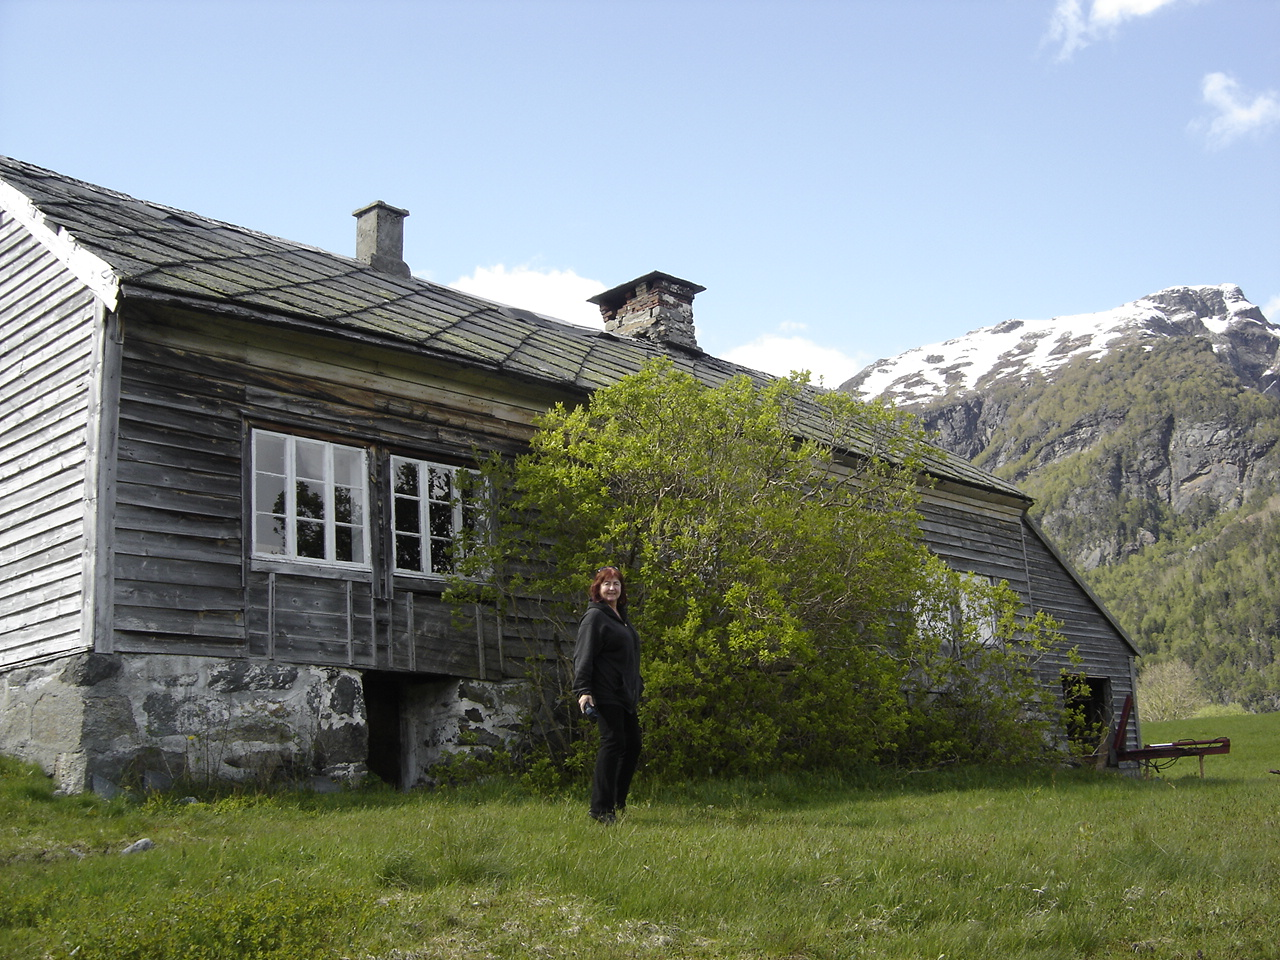 The old farmhouse. © Anne Gullbjørg Digranes